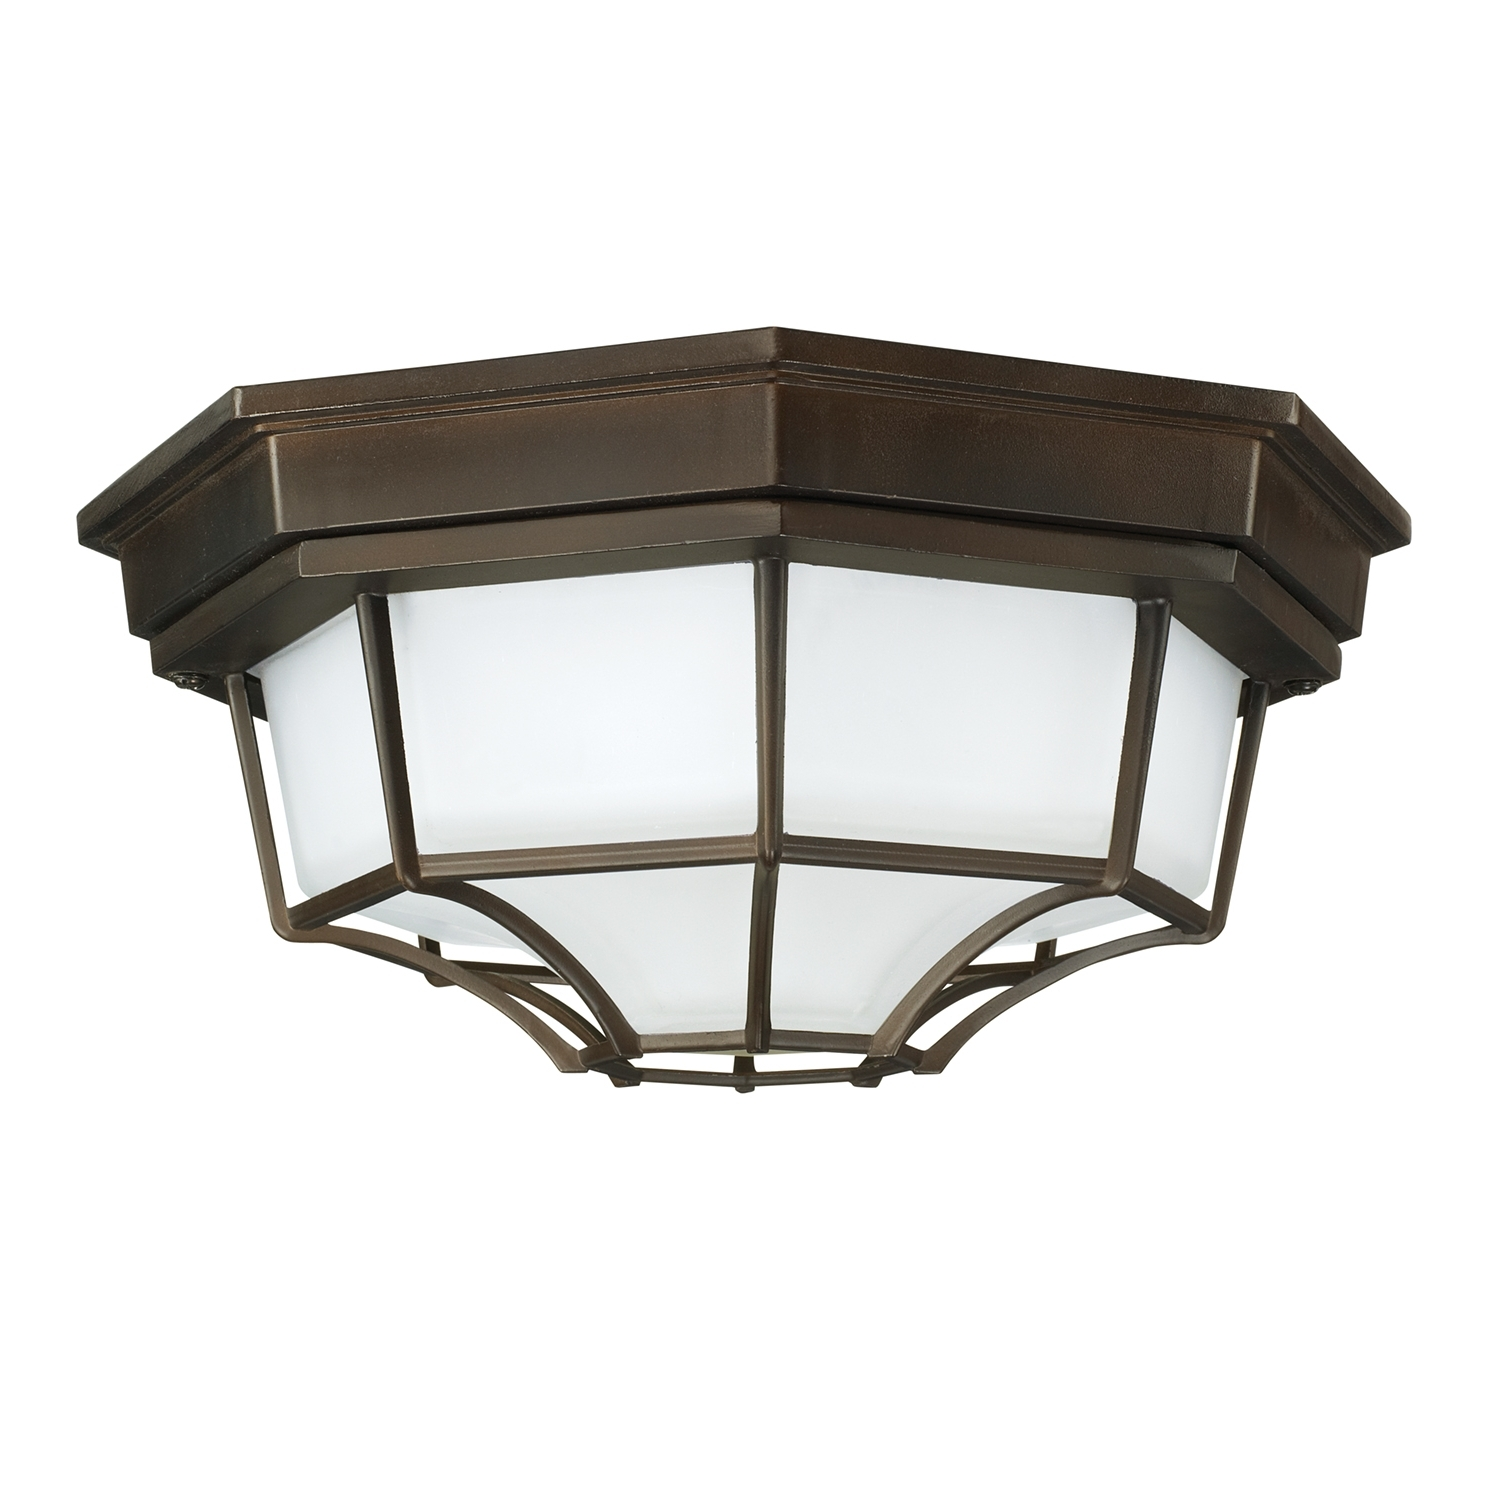 Capital Lighting Throughout Trendy Dusk To Dawn Outdoor Ceiling Lights (View 1 of 20)